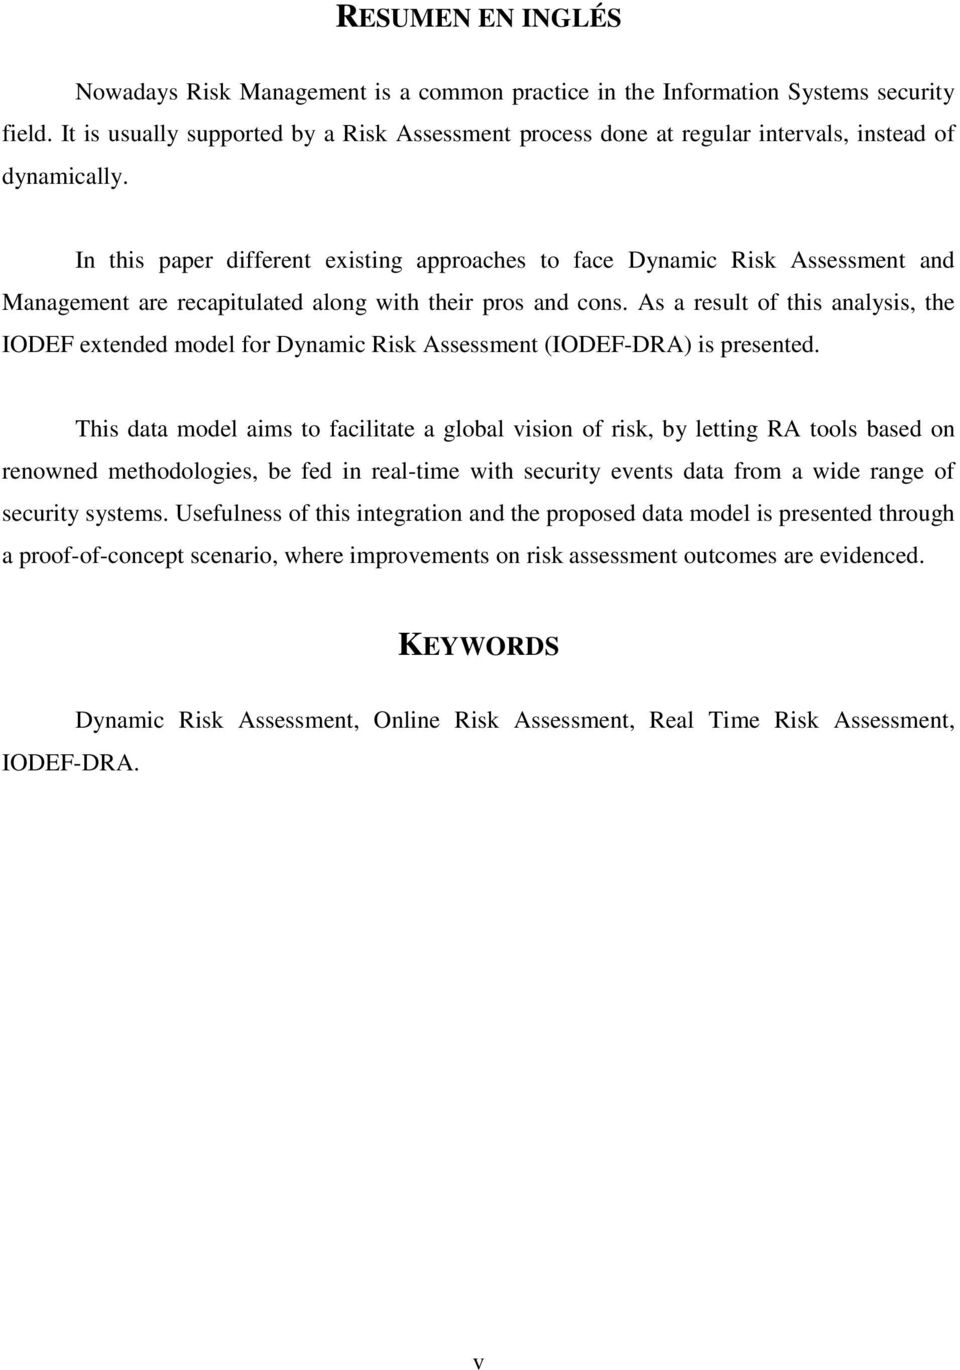 In this paper different existing approaches to face Dynamic Risk Assessment and Management are recapitulated along with their pros and cons.